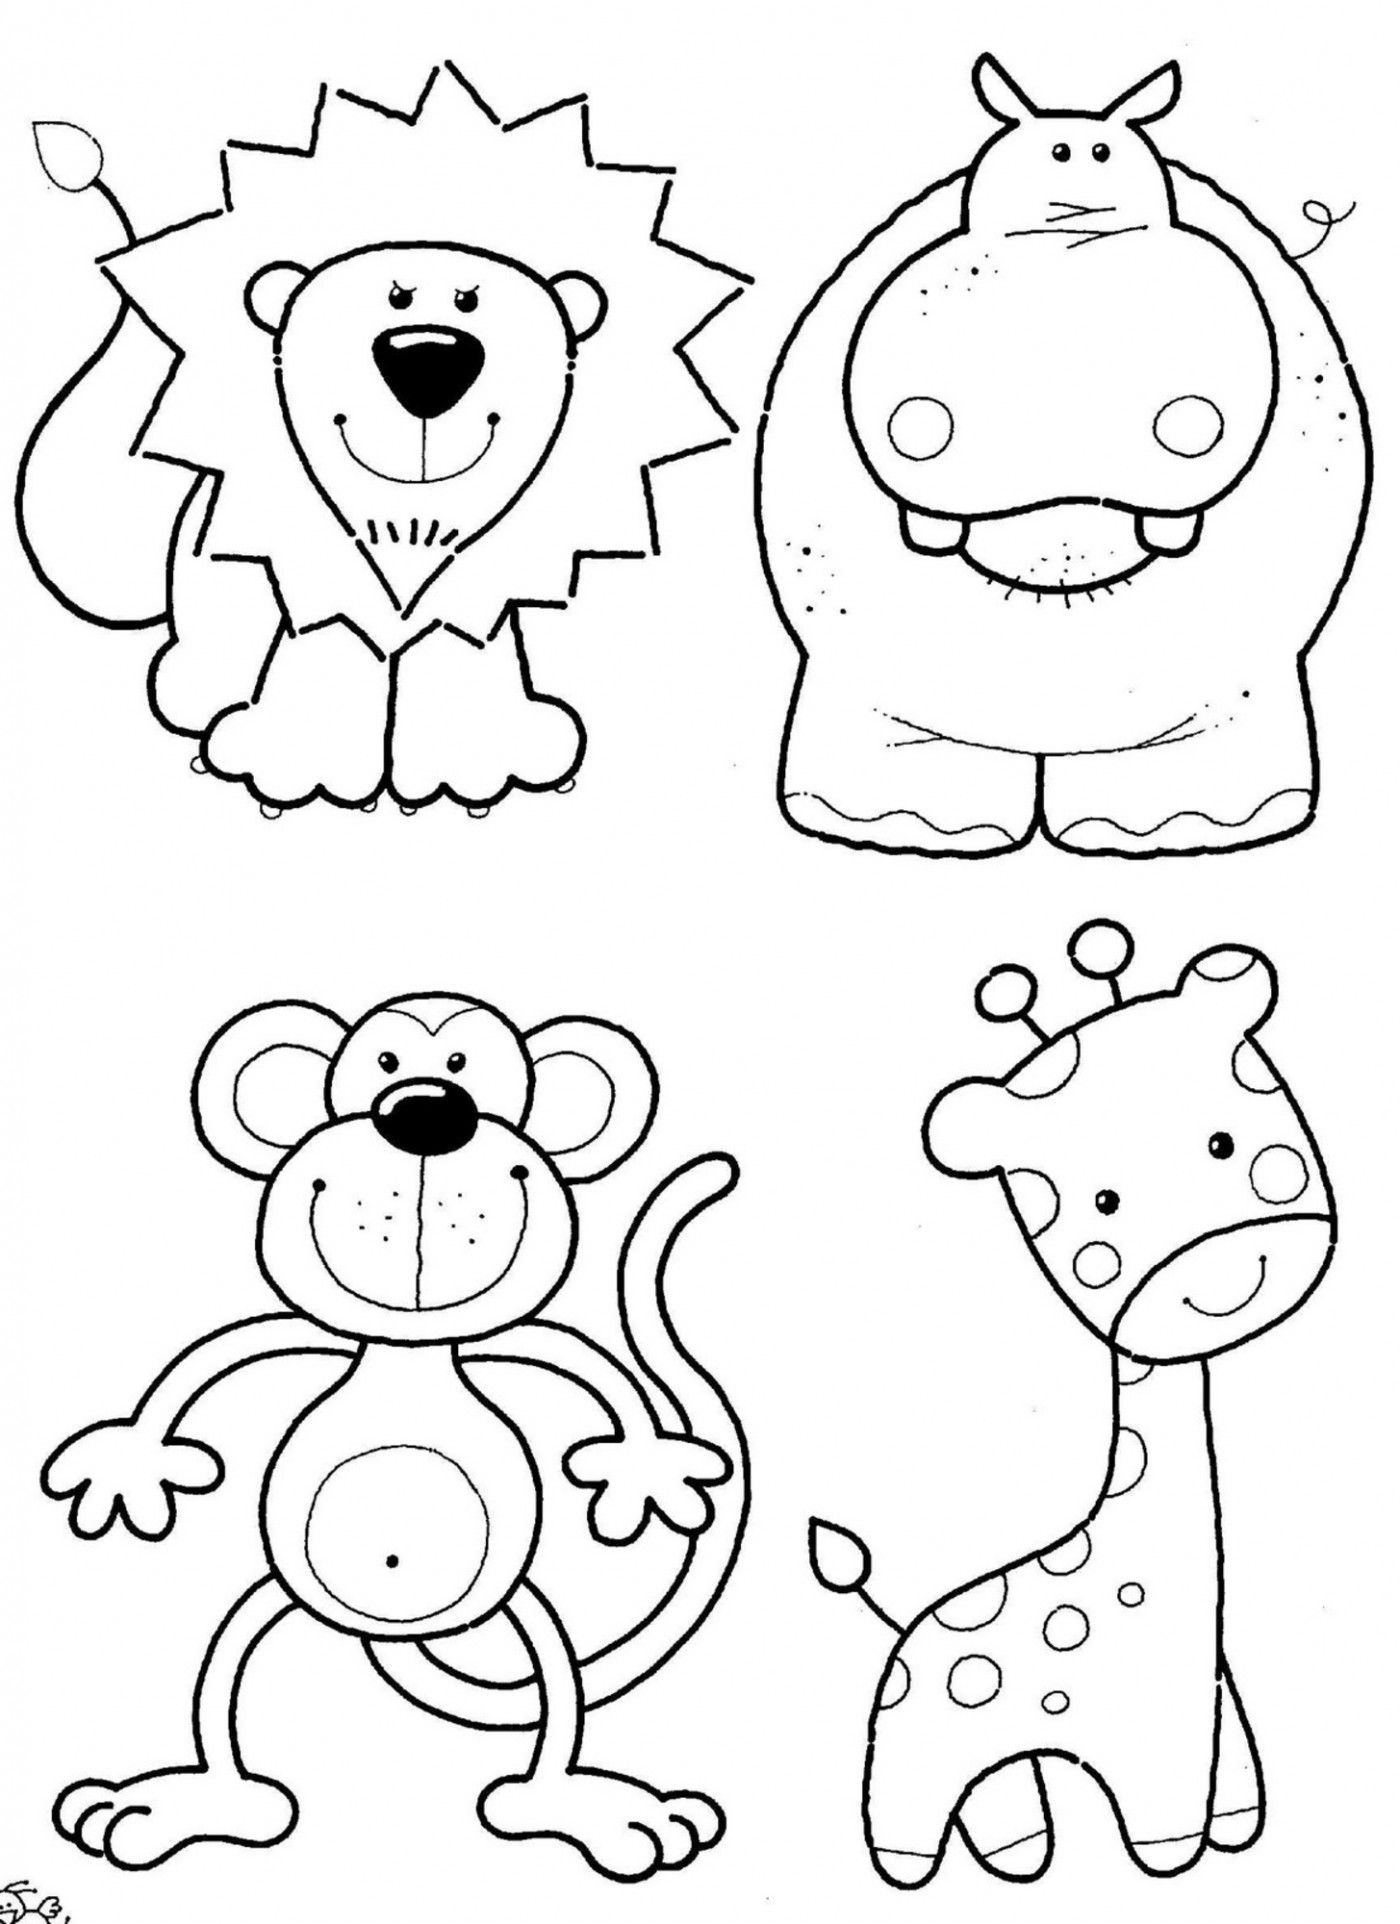 animal coloring pages 14 coloring pages pinterest animal - Coloring Pages Animals